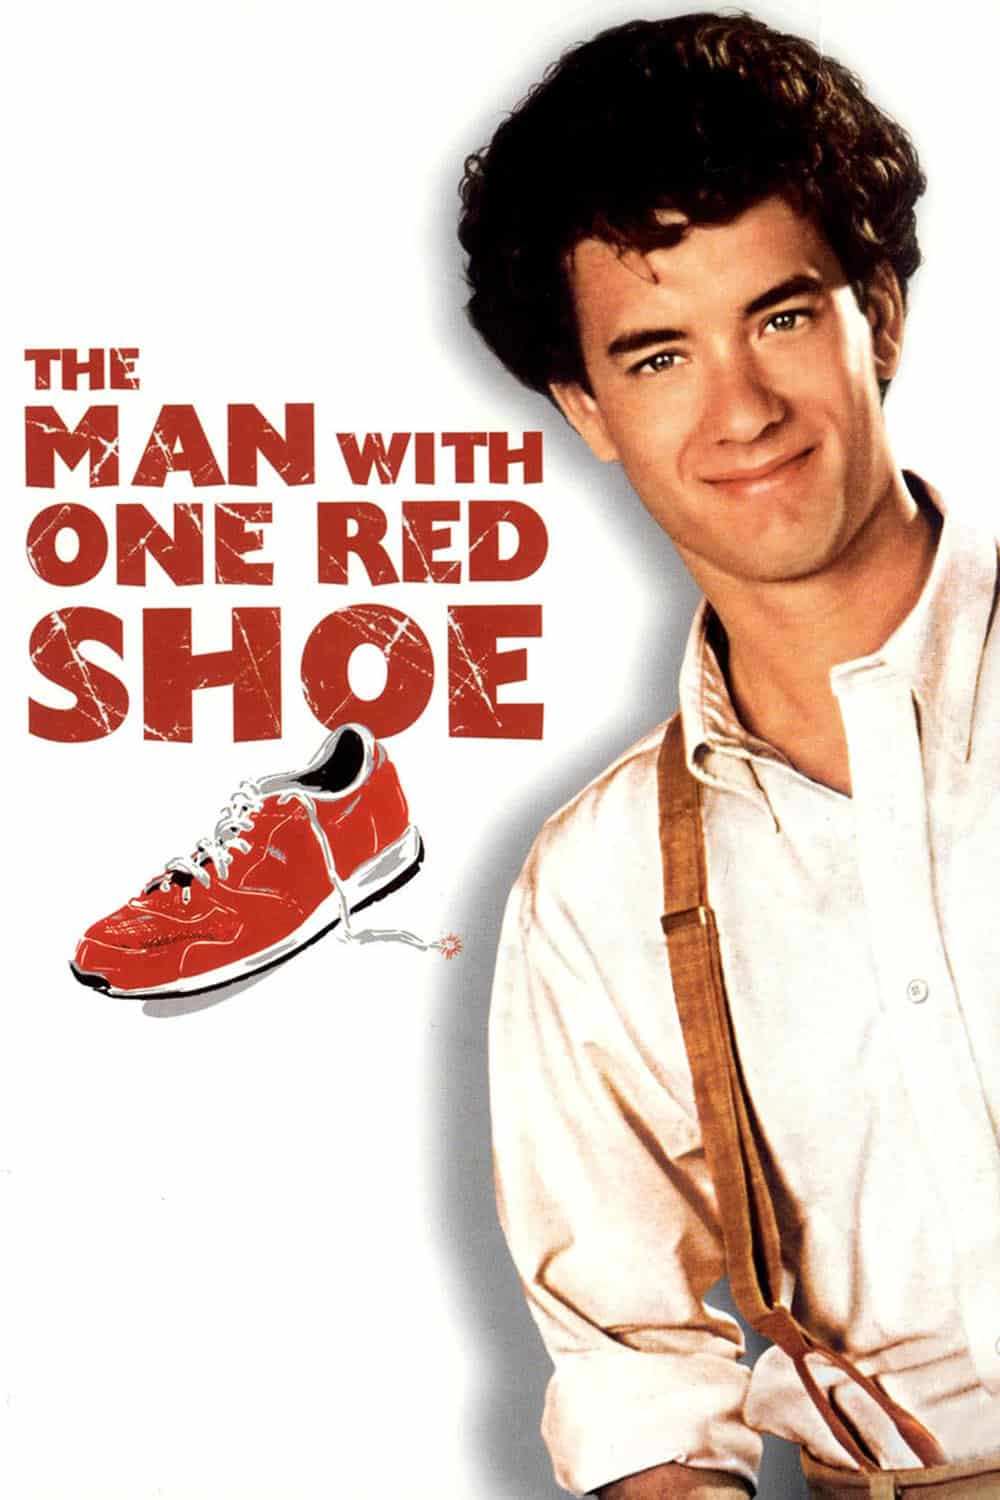 The Man with One Red Shoe, 1985